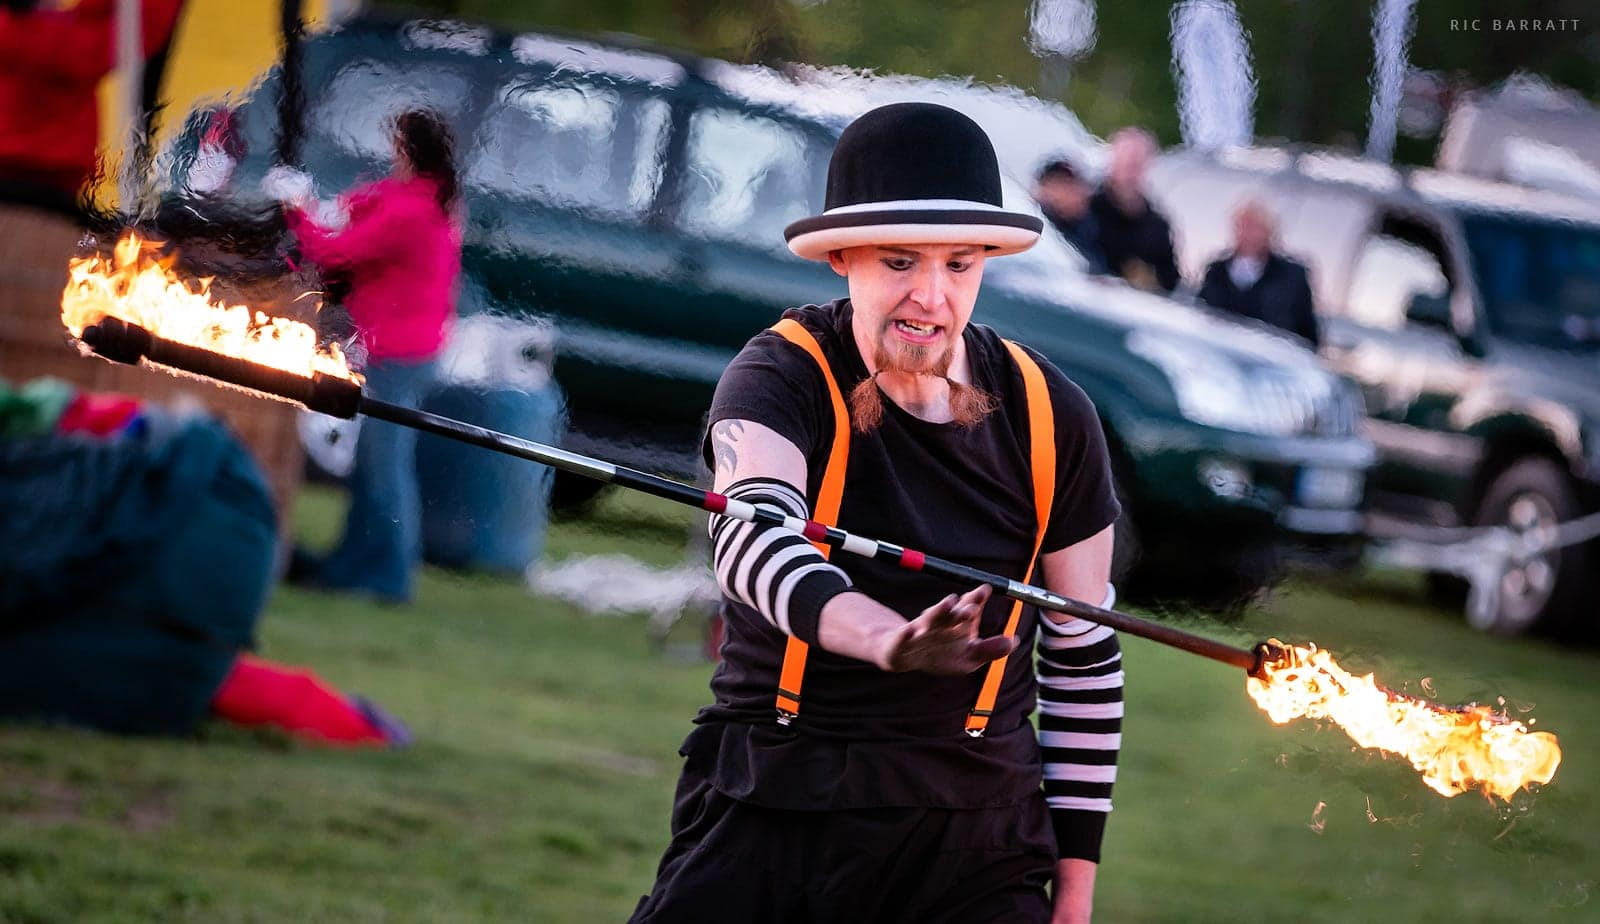 Circus performer performs tricks with flaming baton.